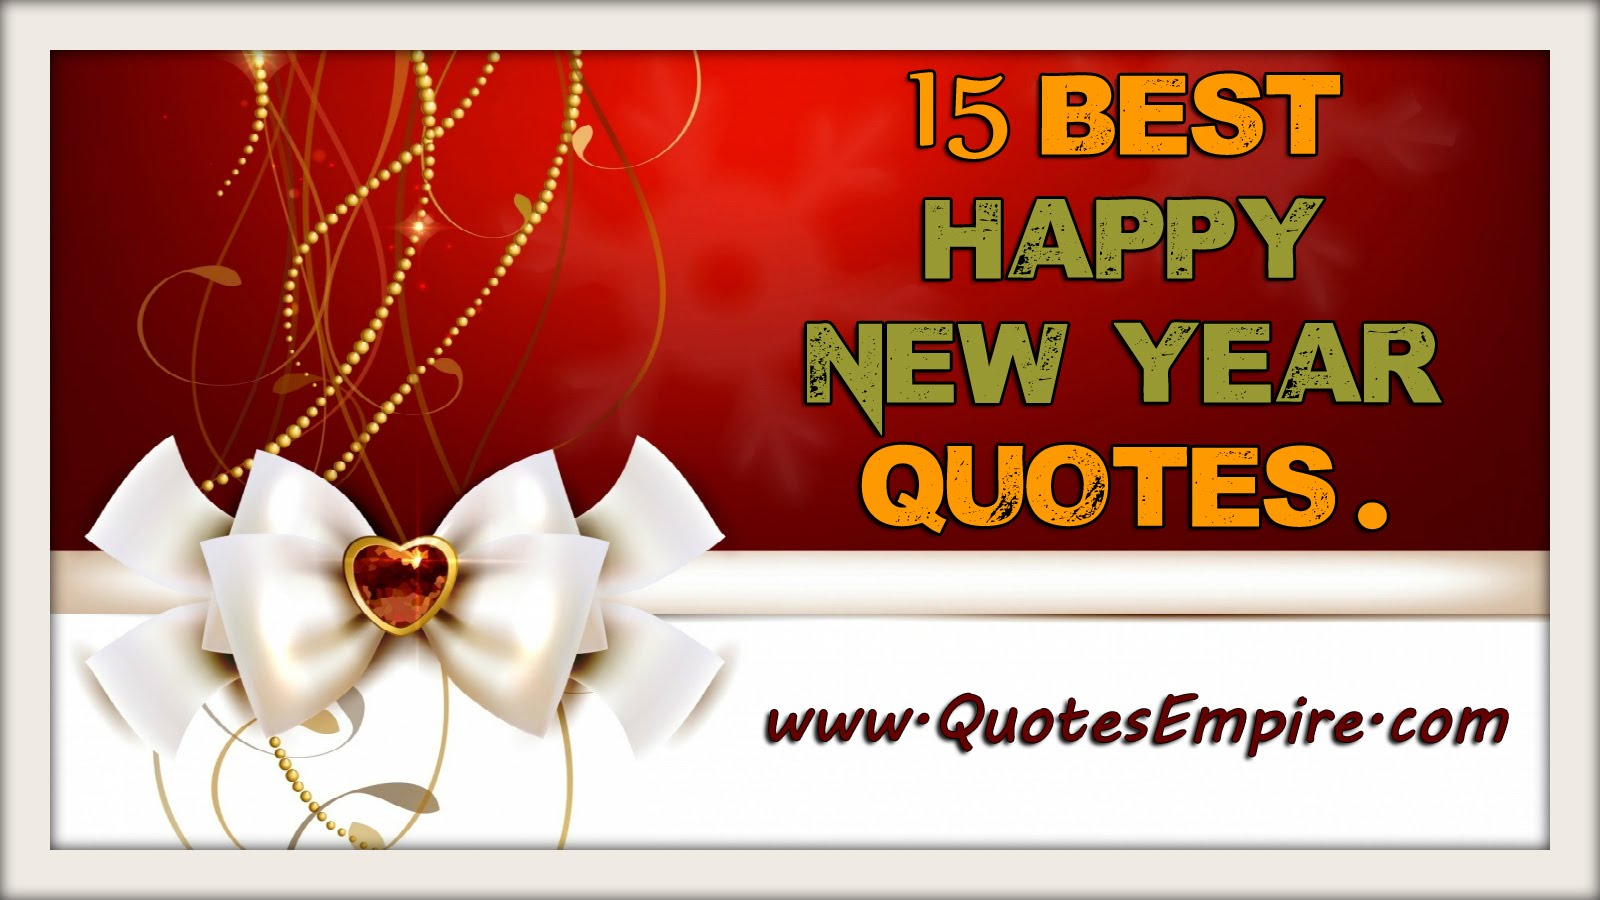 15 Most Beautiful Happy New Year Quotes – NetHugs.com